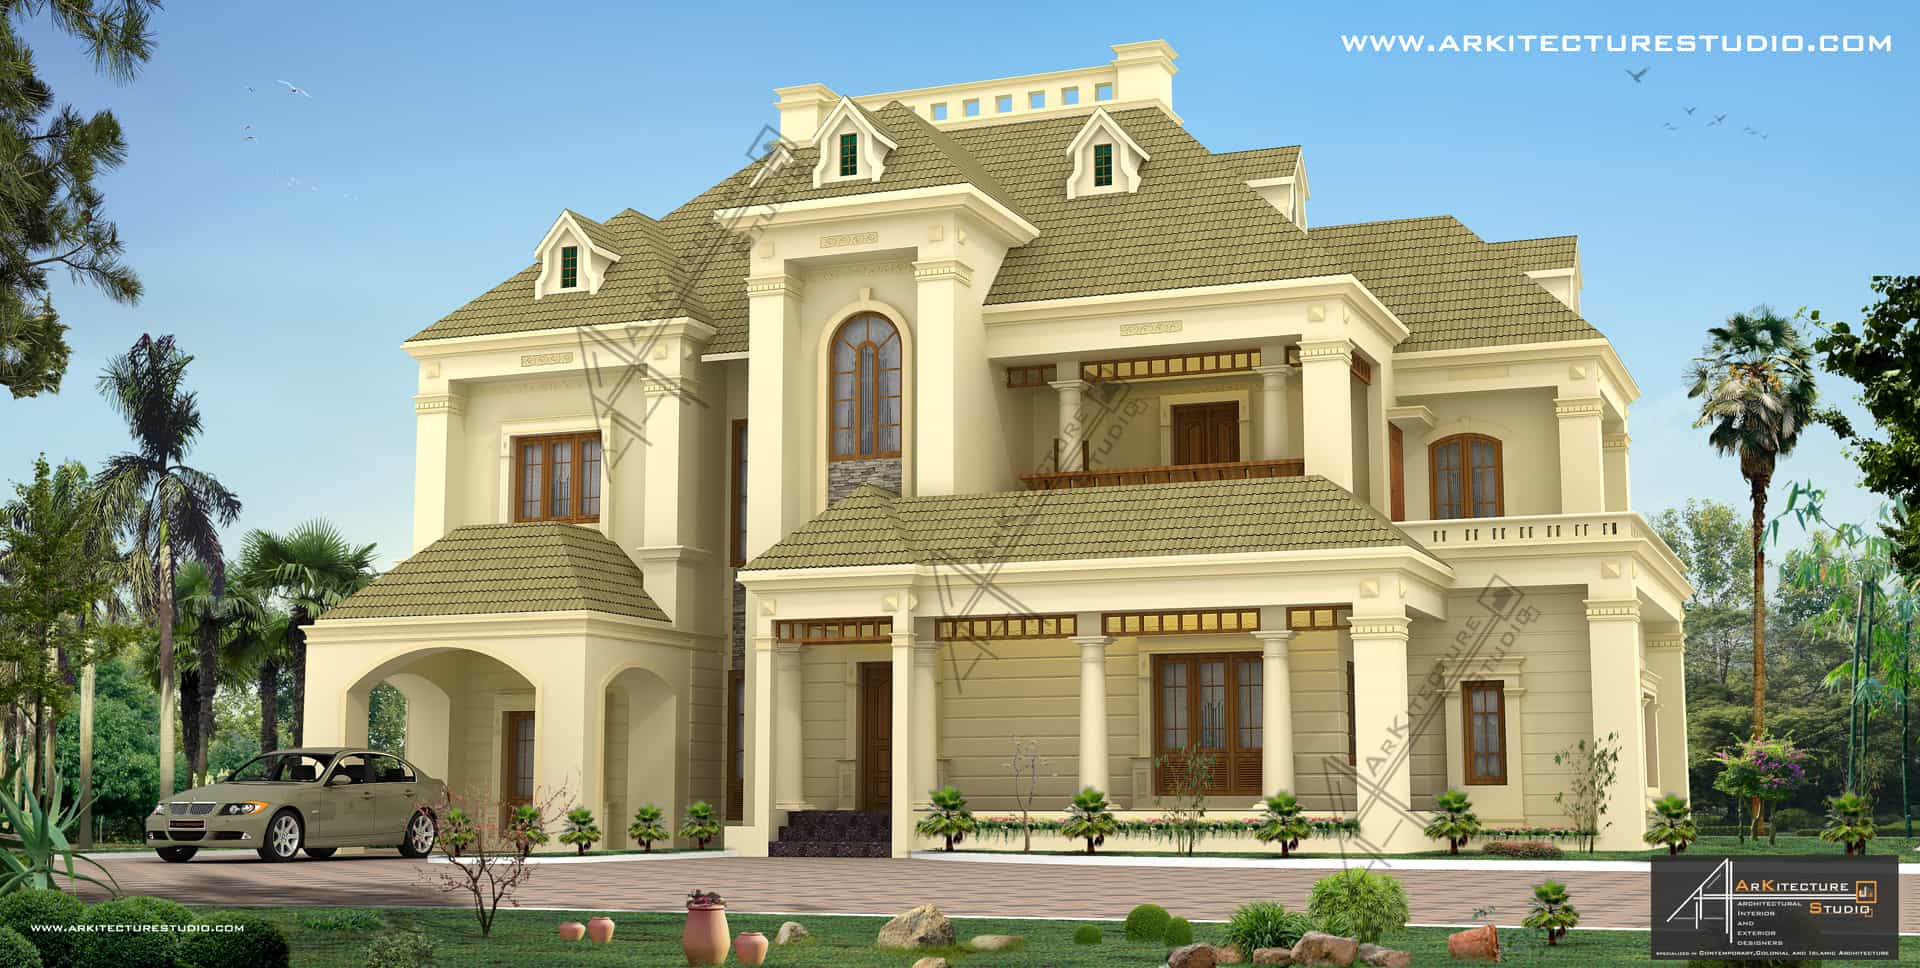 Colonial style house designs in kerala at 3500 sqft 5000 for Luxury home models